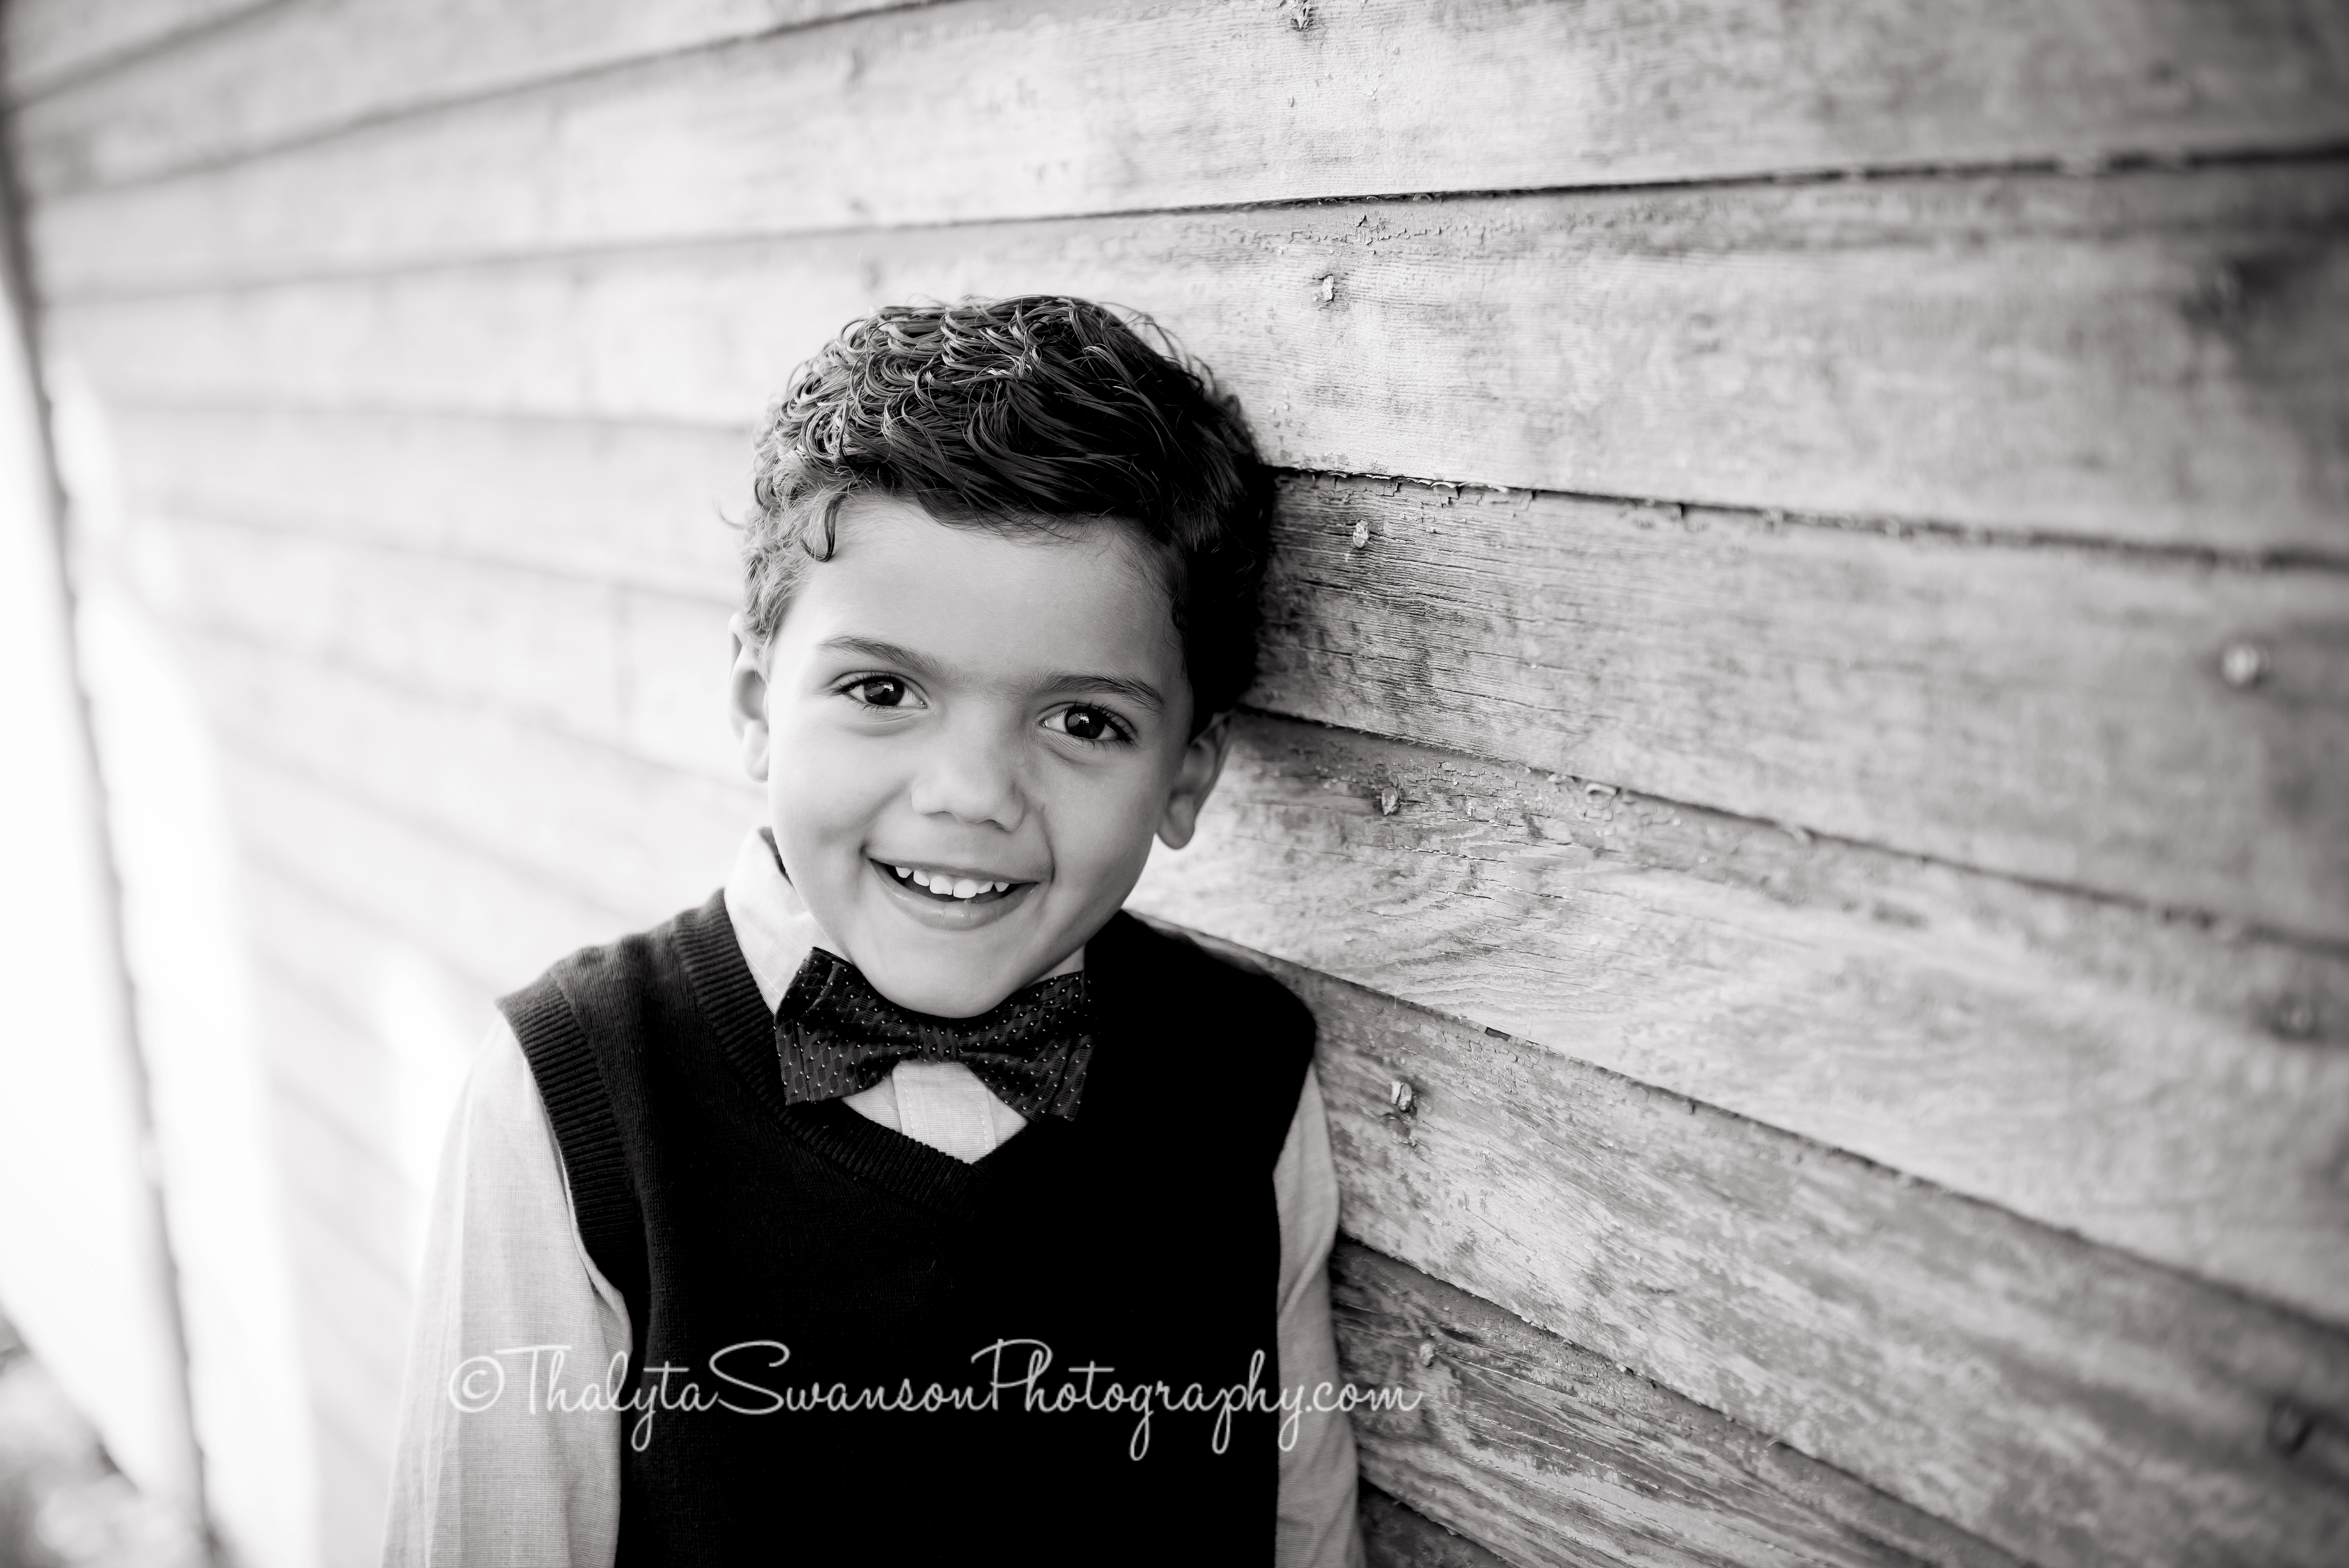 thalyta-swanson-photography-fort-collins-photographer-4